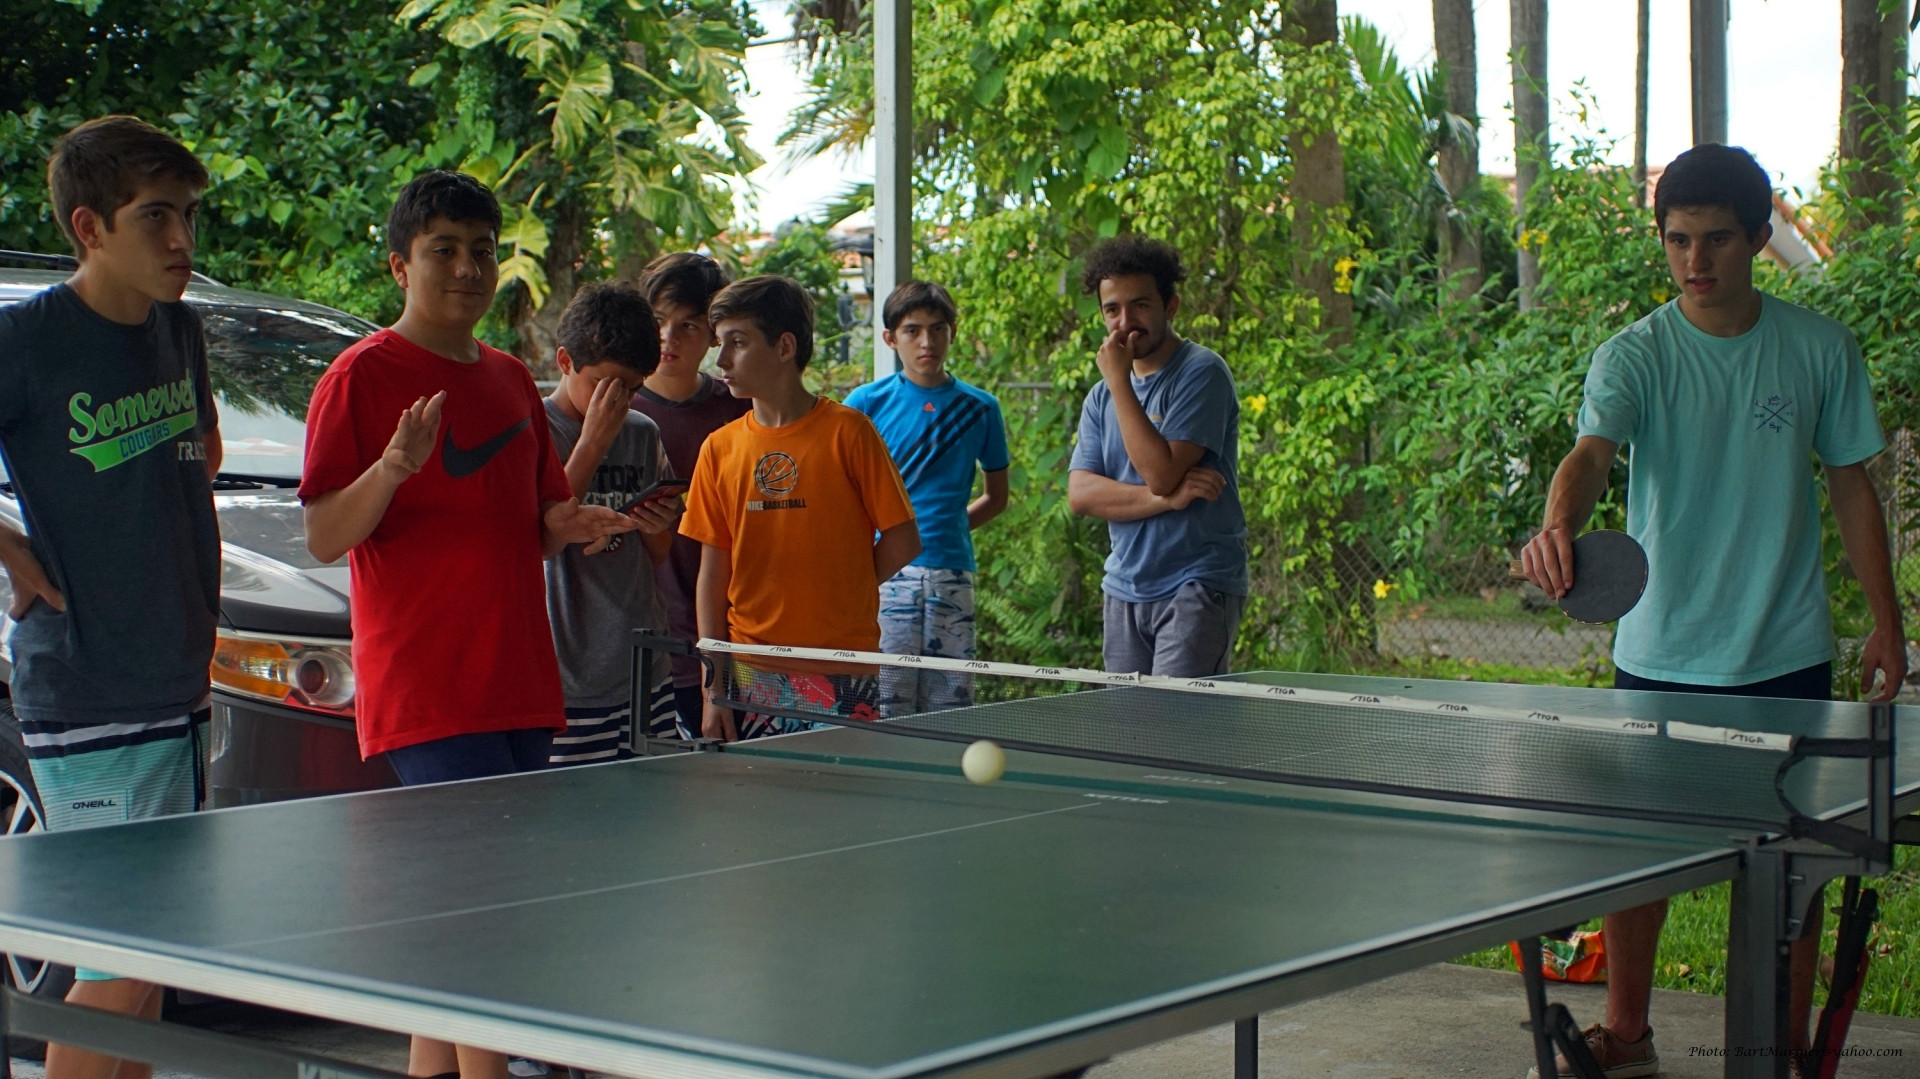 And Ping-Pong is all about Speed